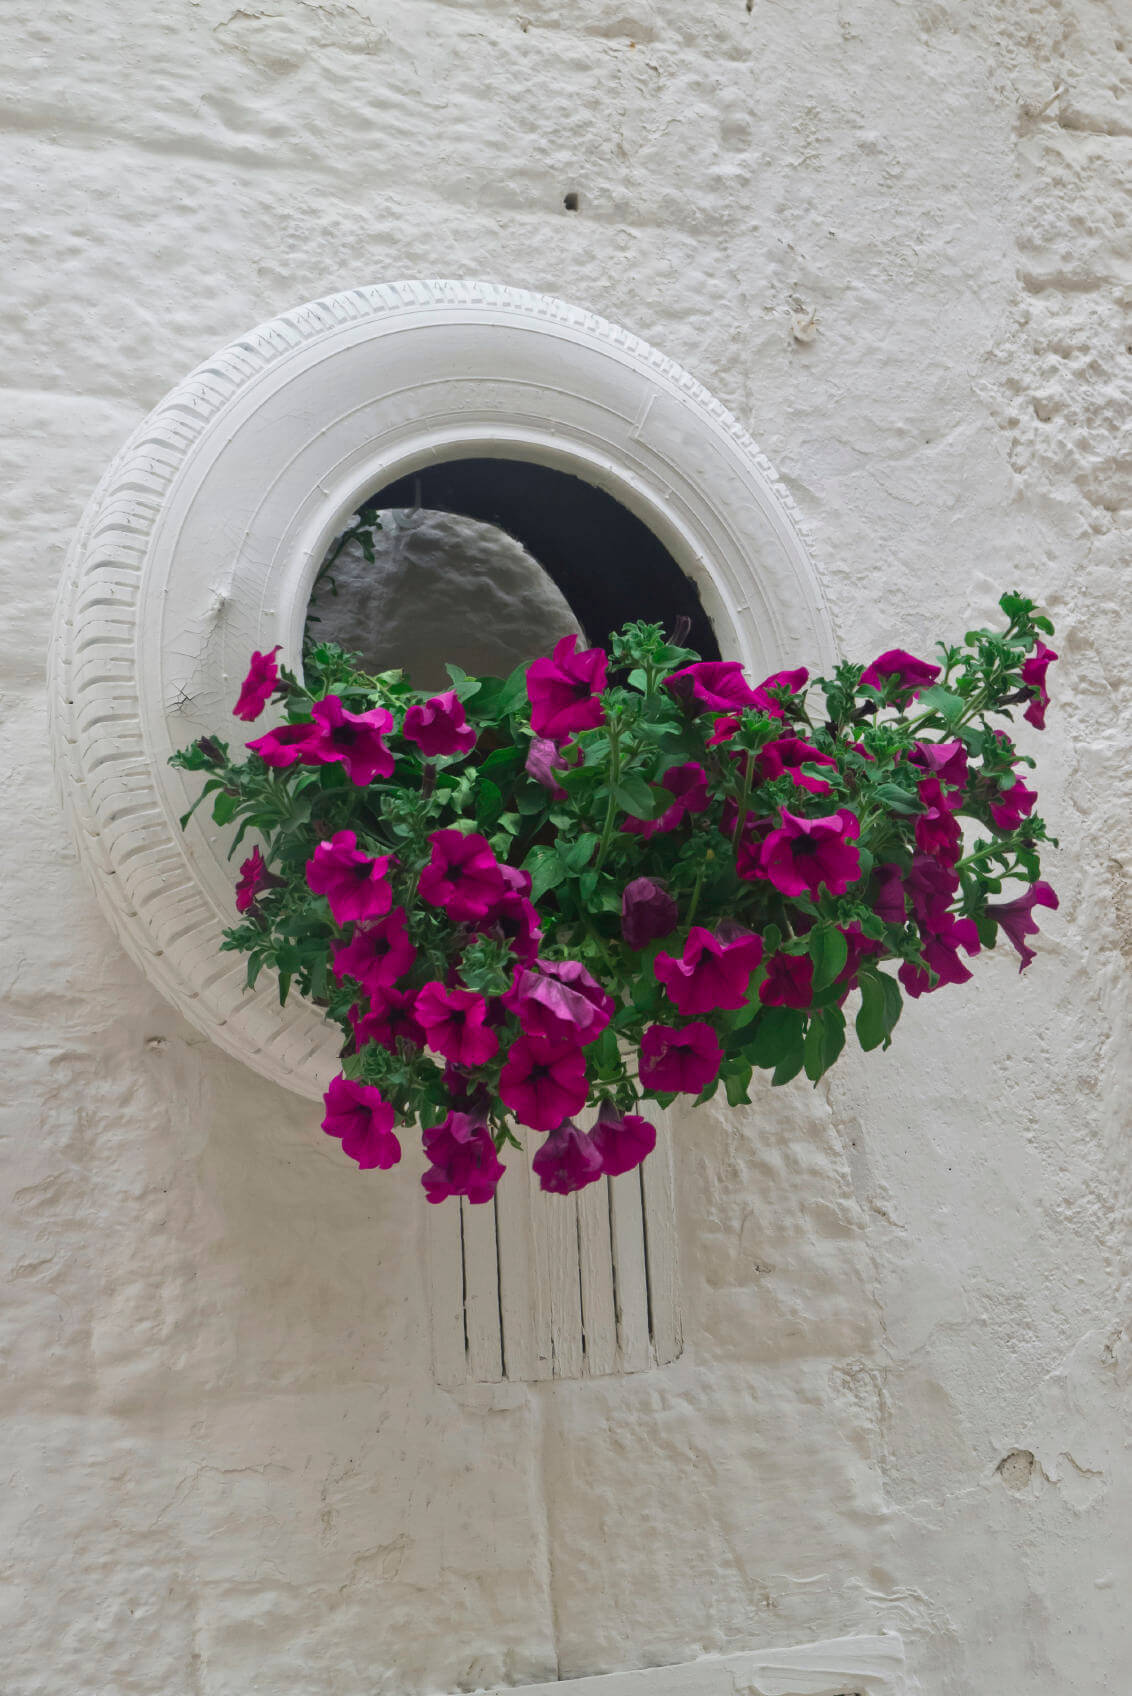 tire planter painted white and hung on white wall holding large bunch of flowers.